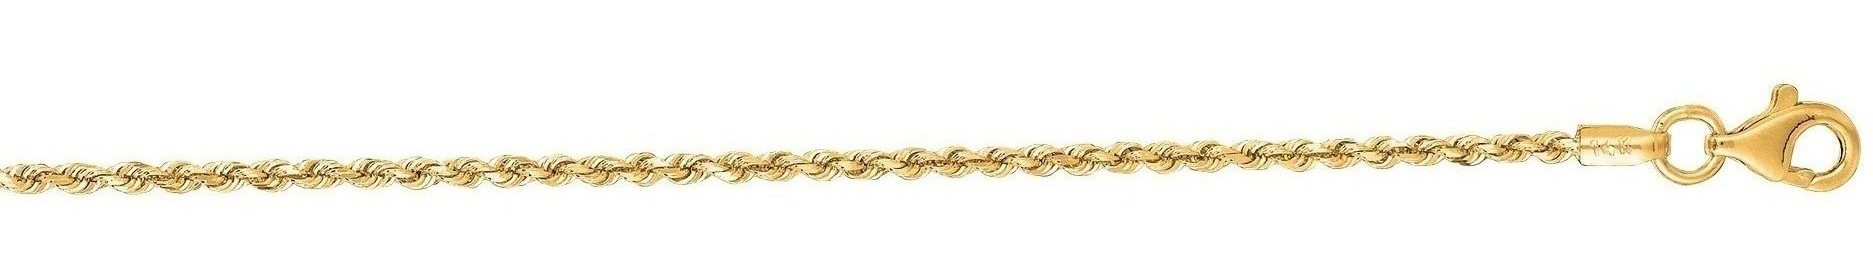 "30"" 10K Yellow Gold 1.50mm (0.06"") Polished Solid Diamond Cut Royal Rope Chain w/ Pear Shape Clasp"